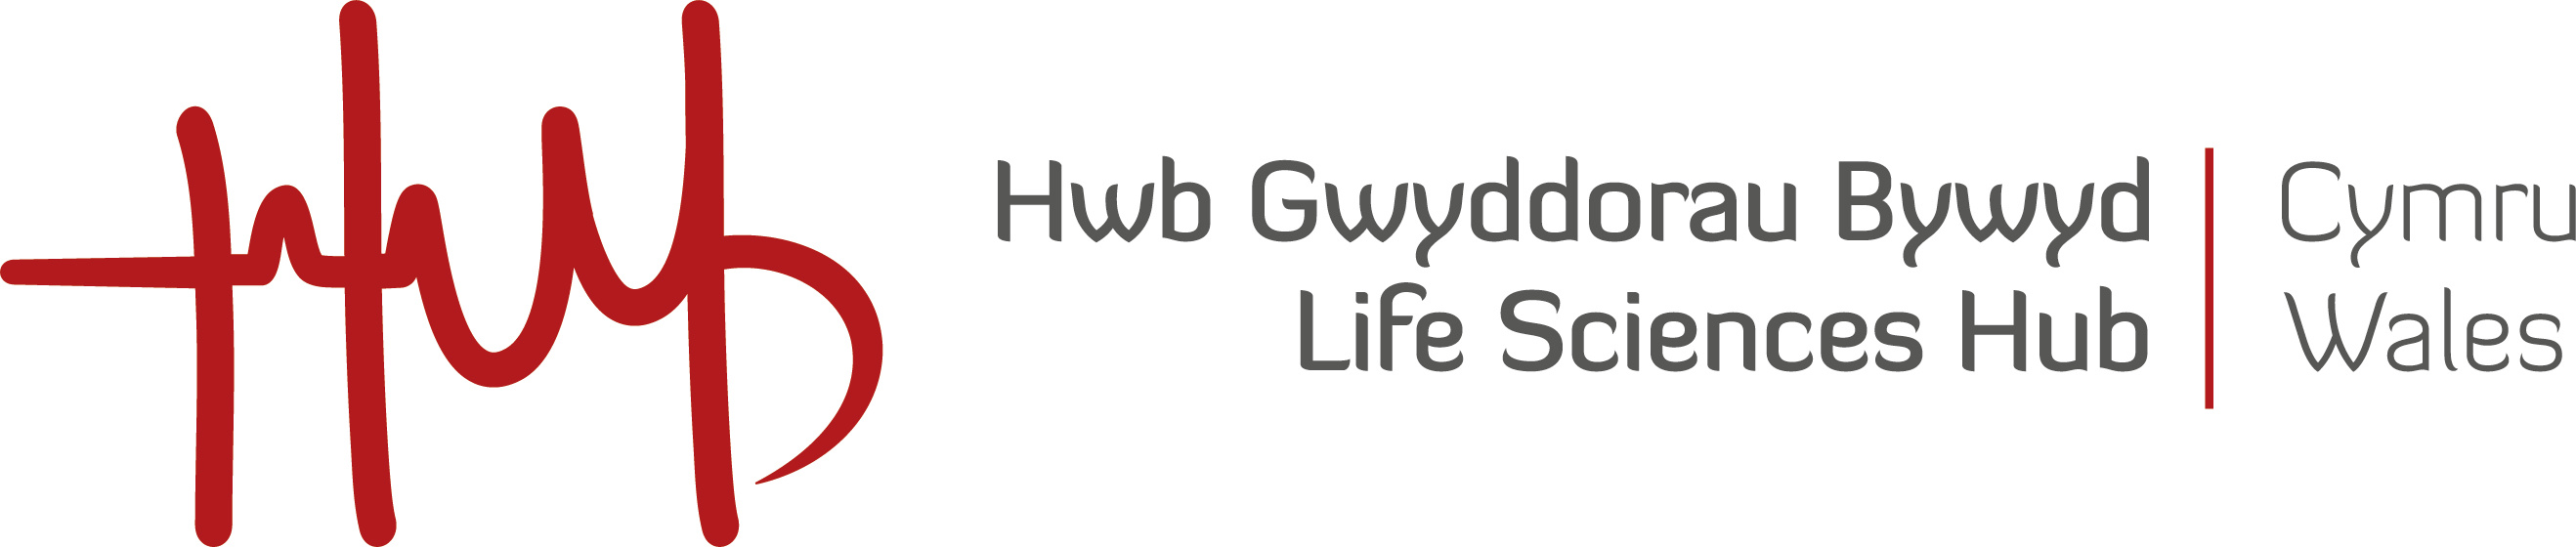 Horizontal_Life_Sciences_Hub_Wales_Logo_